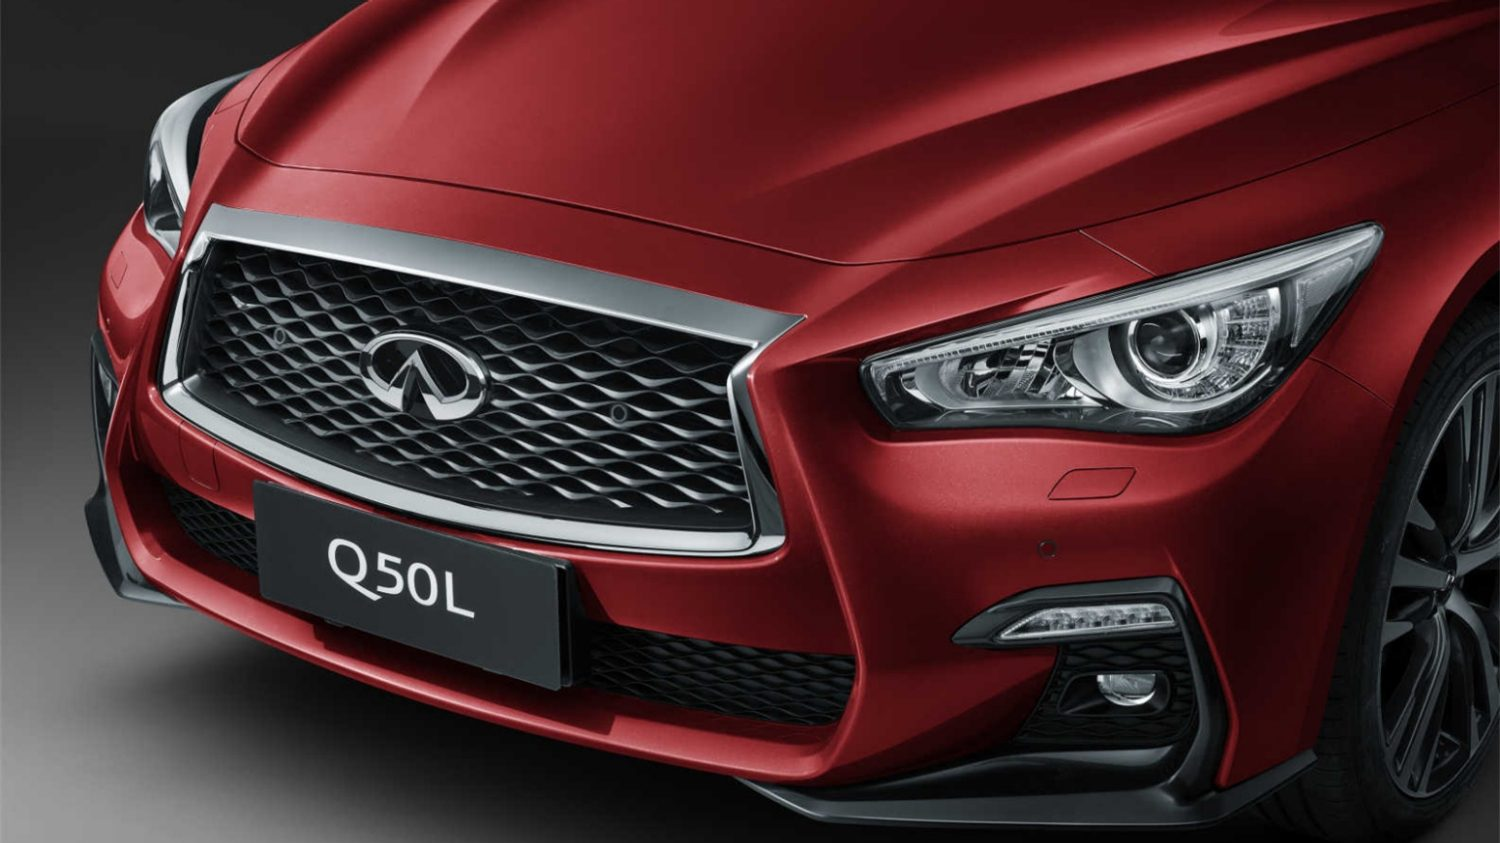 2018 INFINITI Q50 Red Sport Sedan Design Gallery | Left Front Fascia and Signature Profile